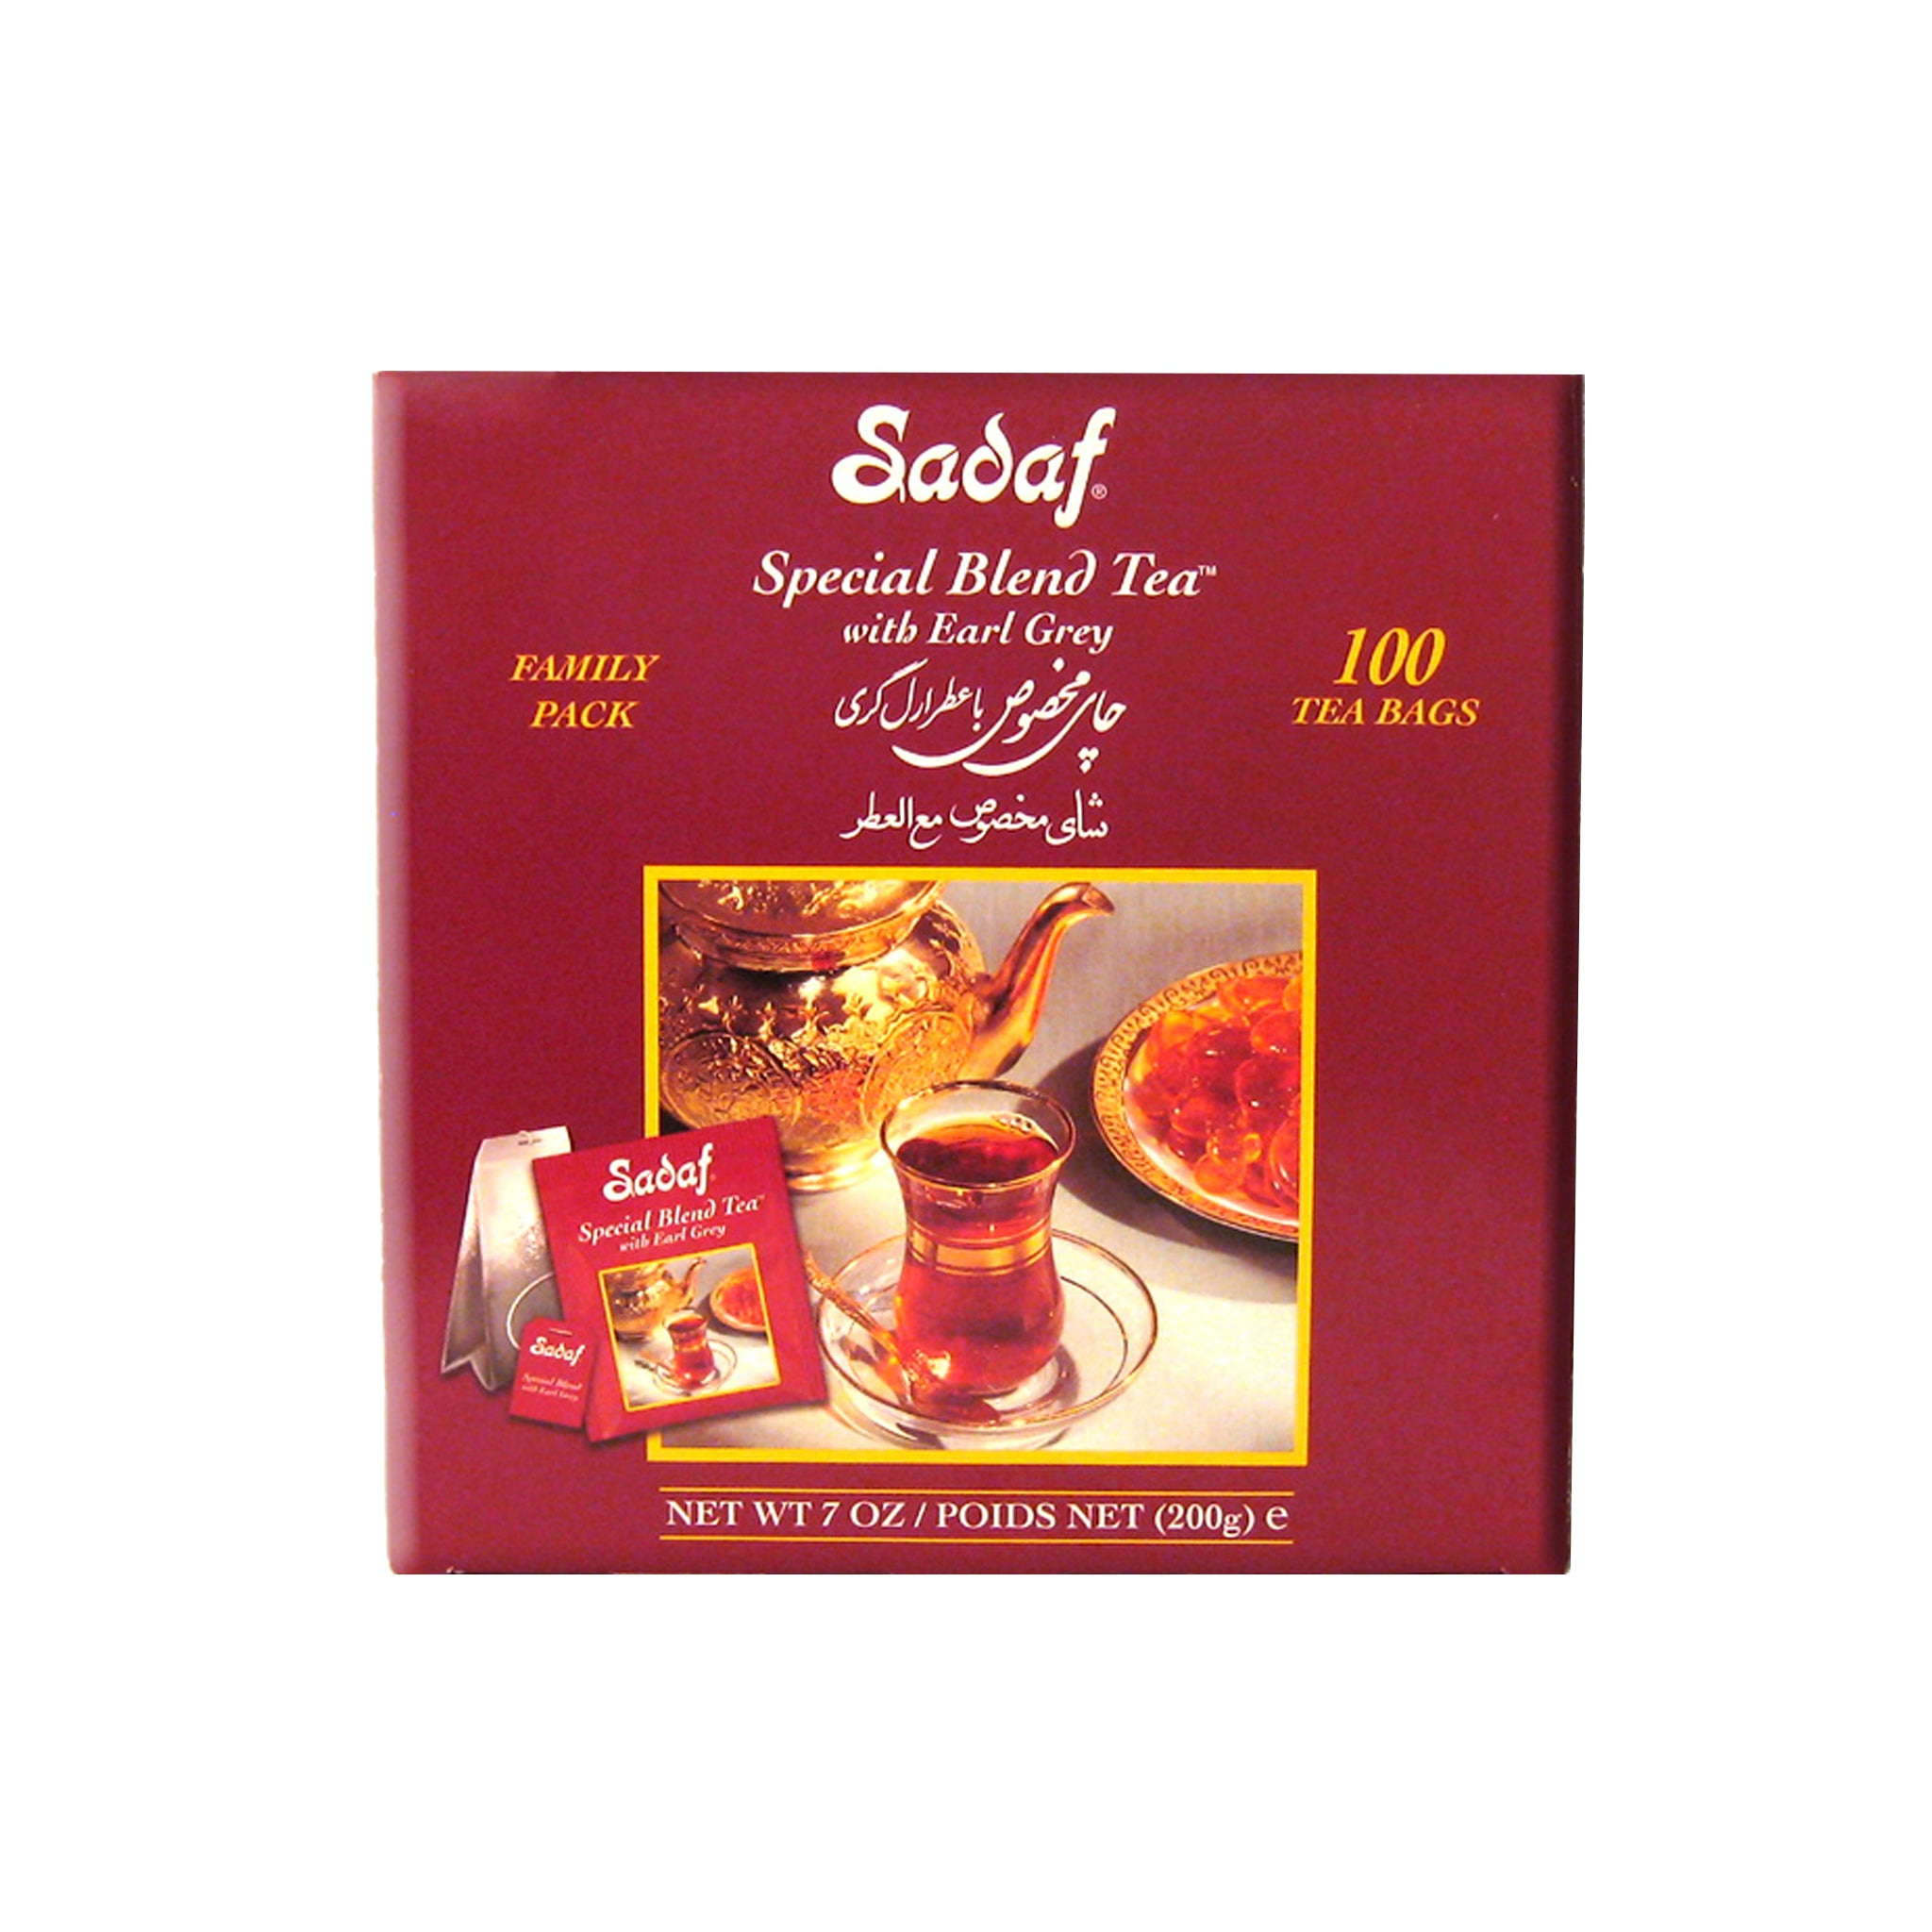 Sadaf Special Blend Earl Grey Tea Bag